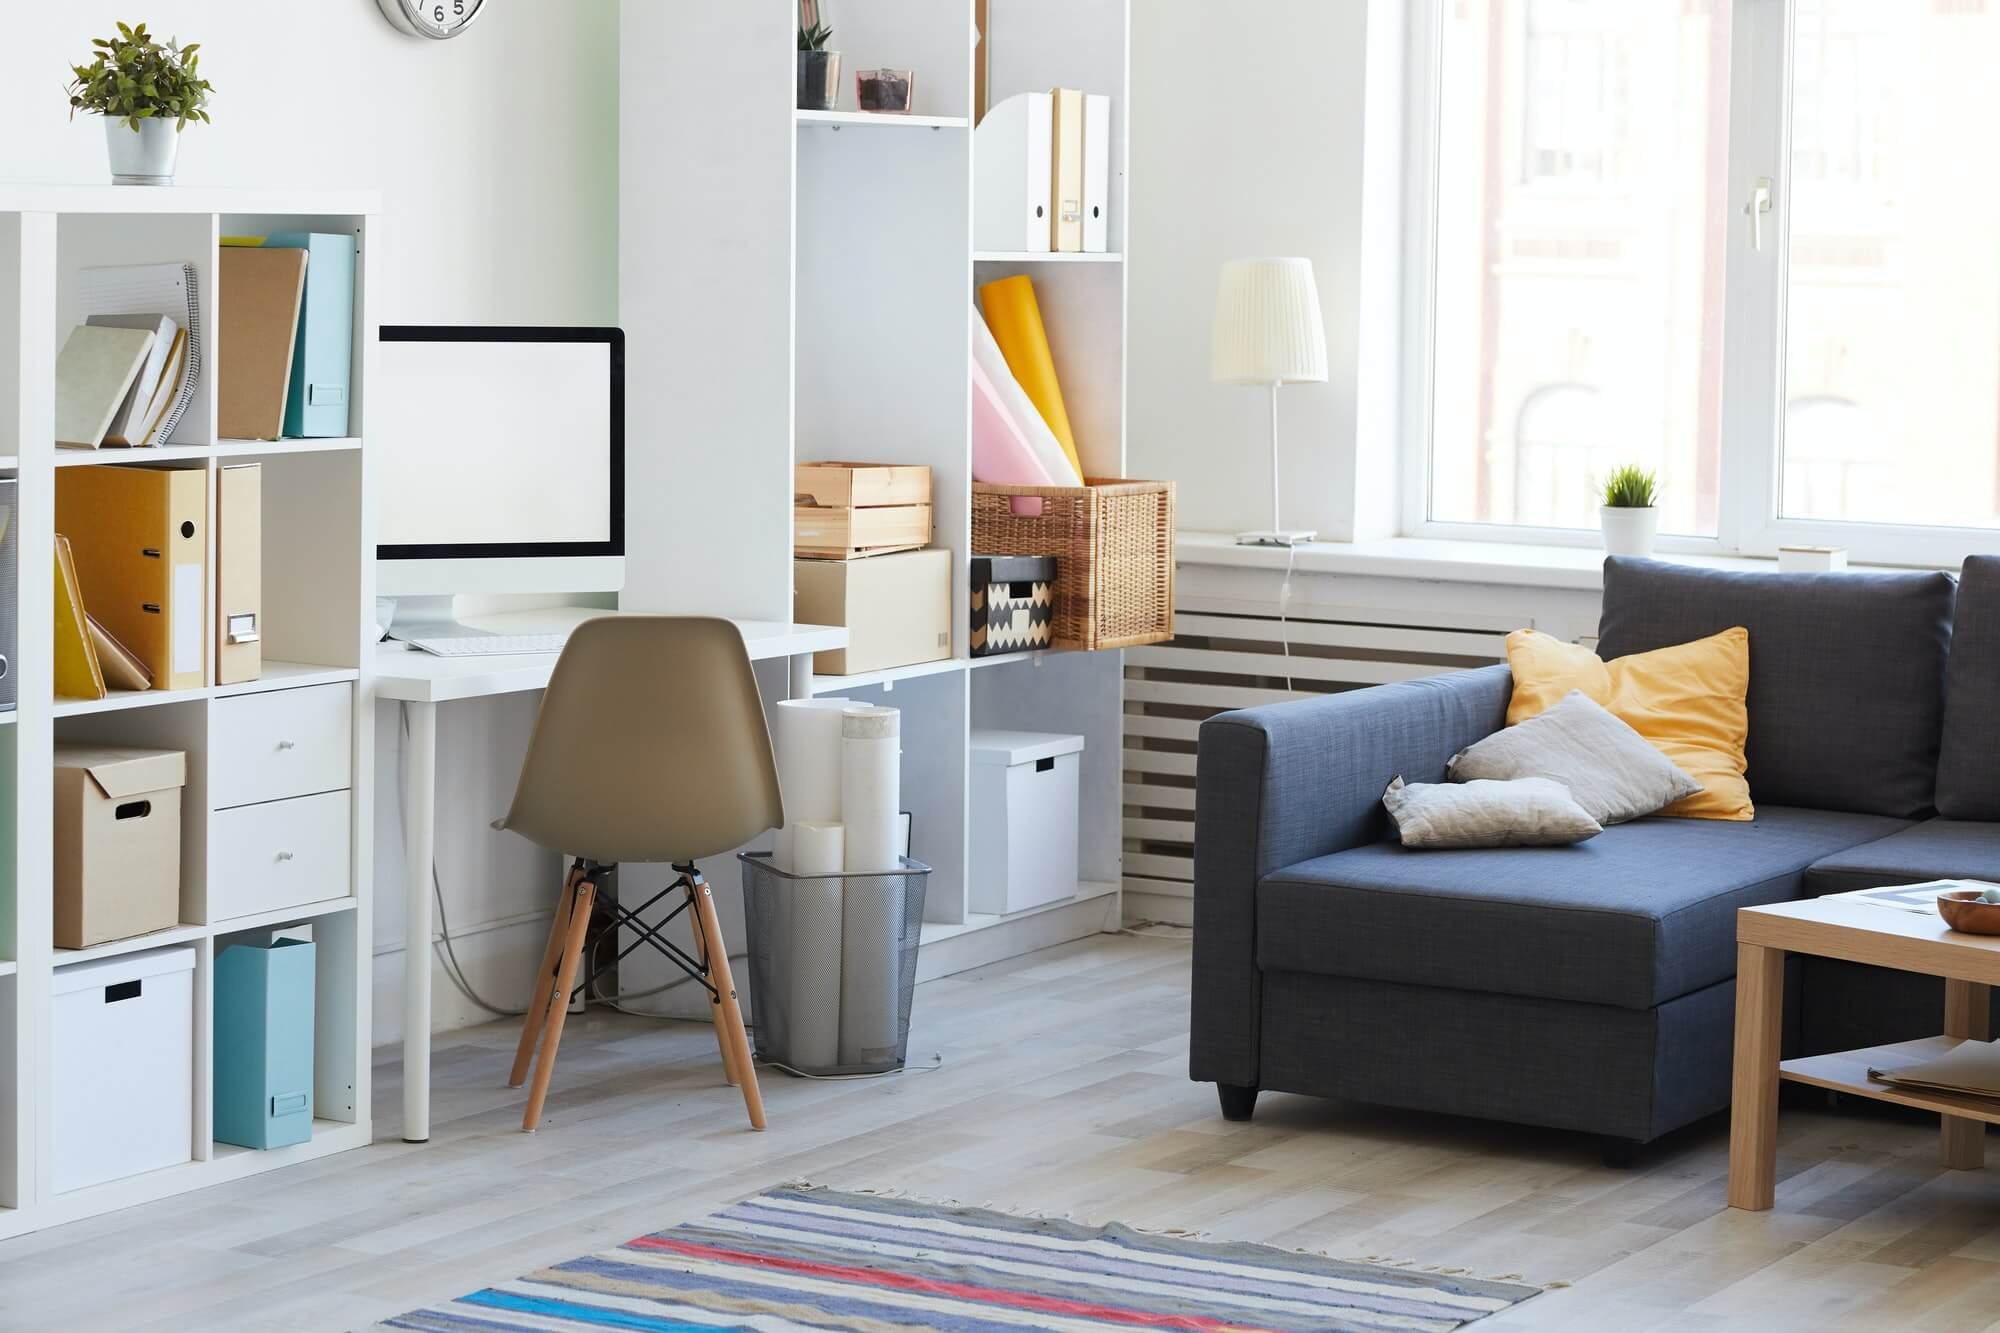 apartment-interior-in-white-and-blue-1.jpg